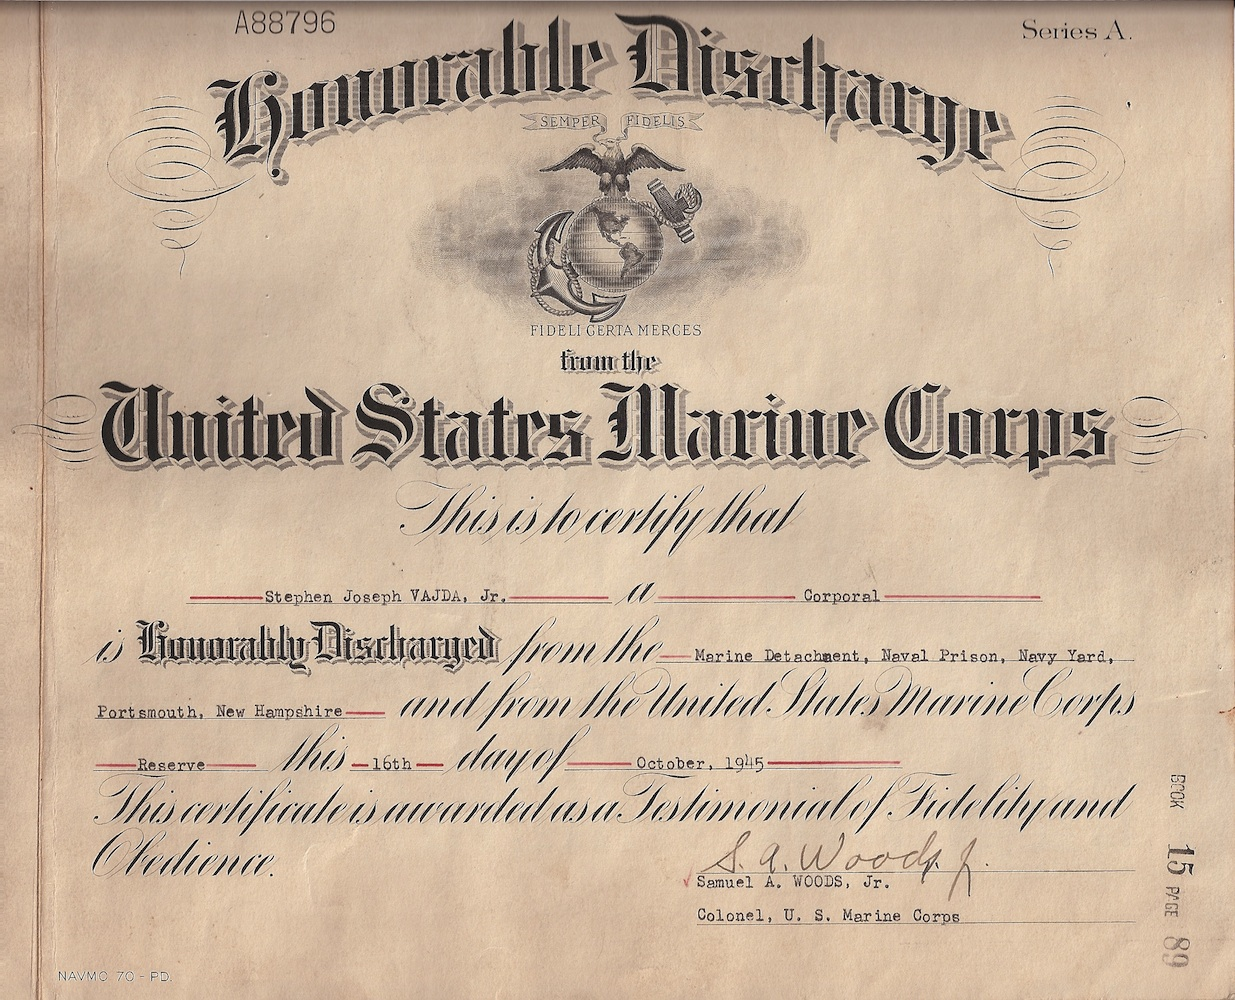 Image:SJVII-Honorable Discharge.jpg